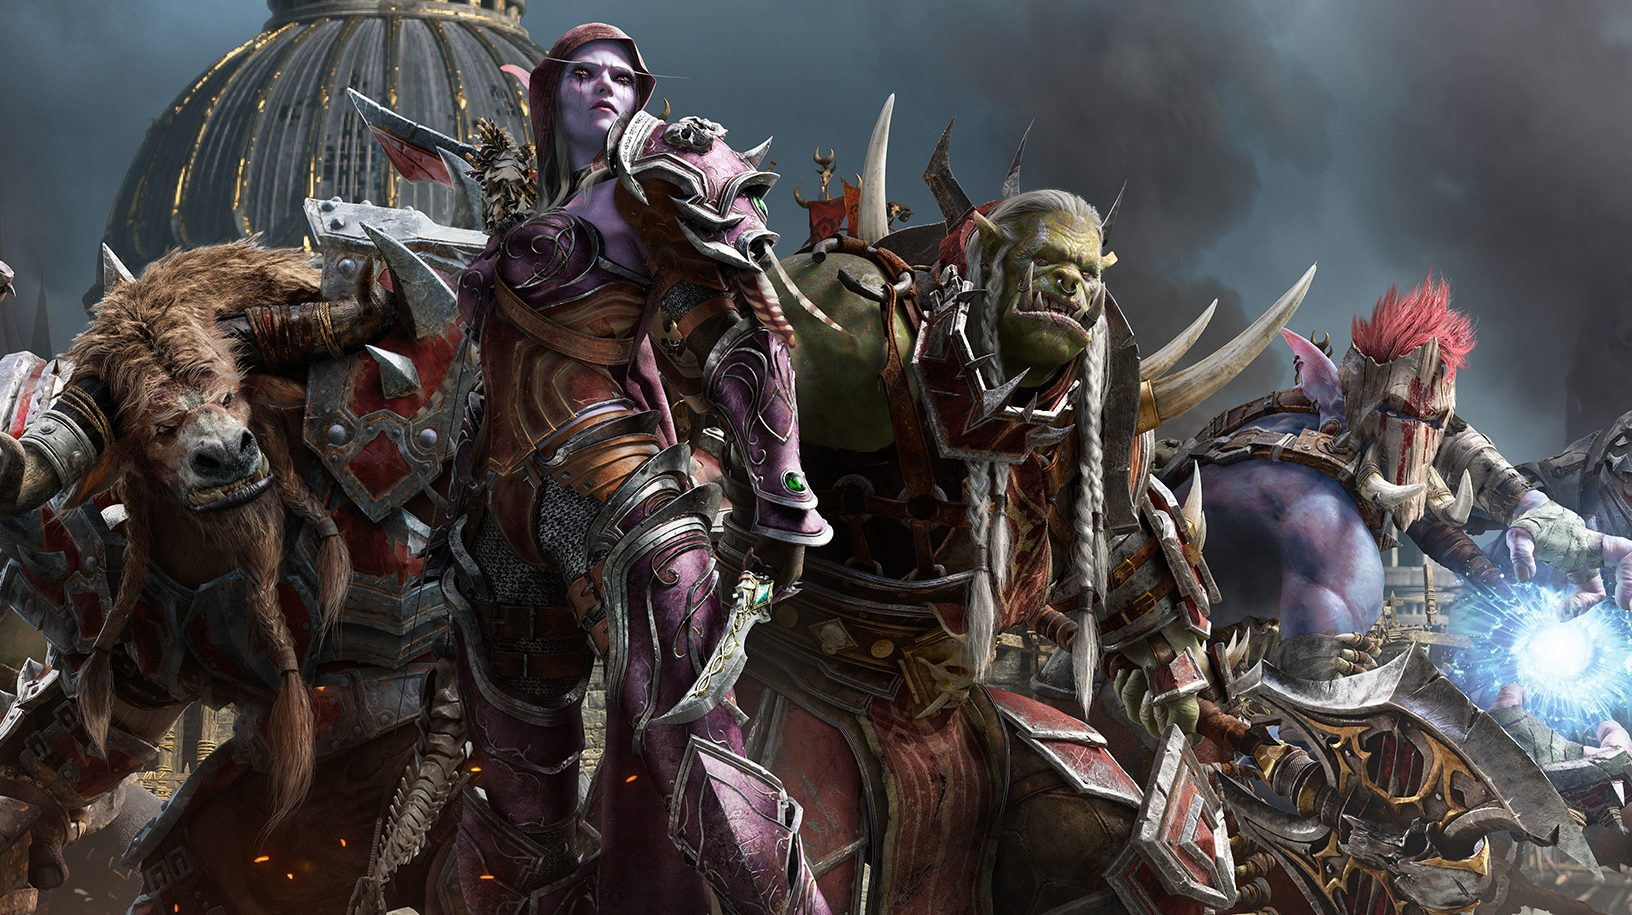 World Of Warcraft Wallpaper Bfa: Is The Horde The Faction Of Evil? That's What Blizzard